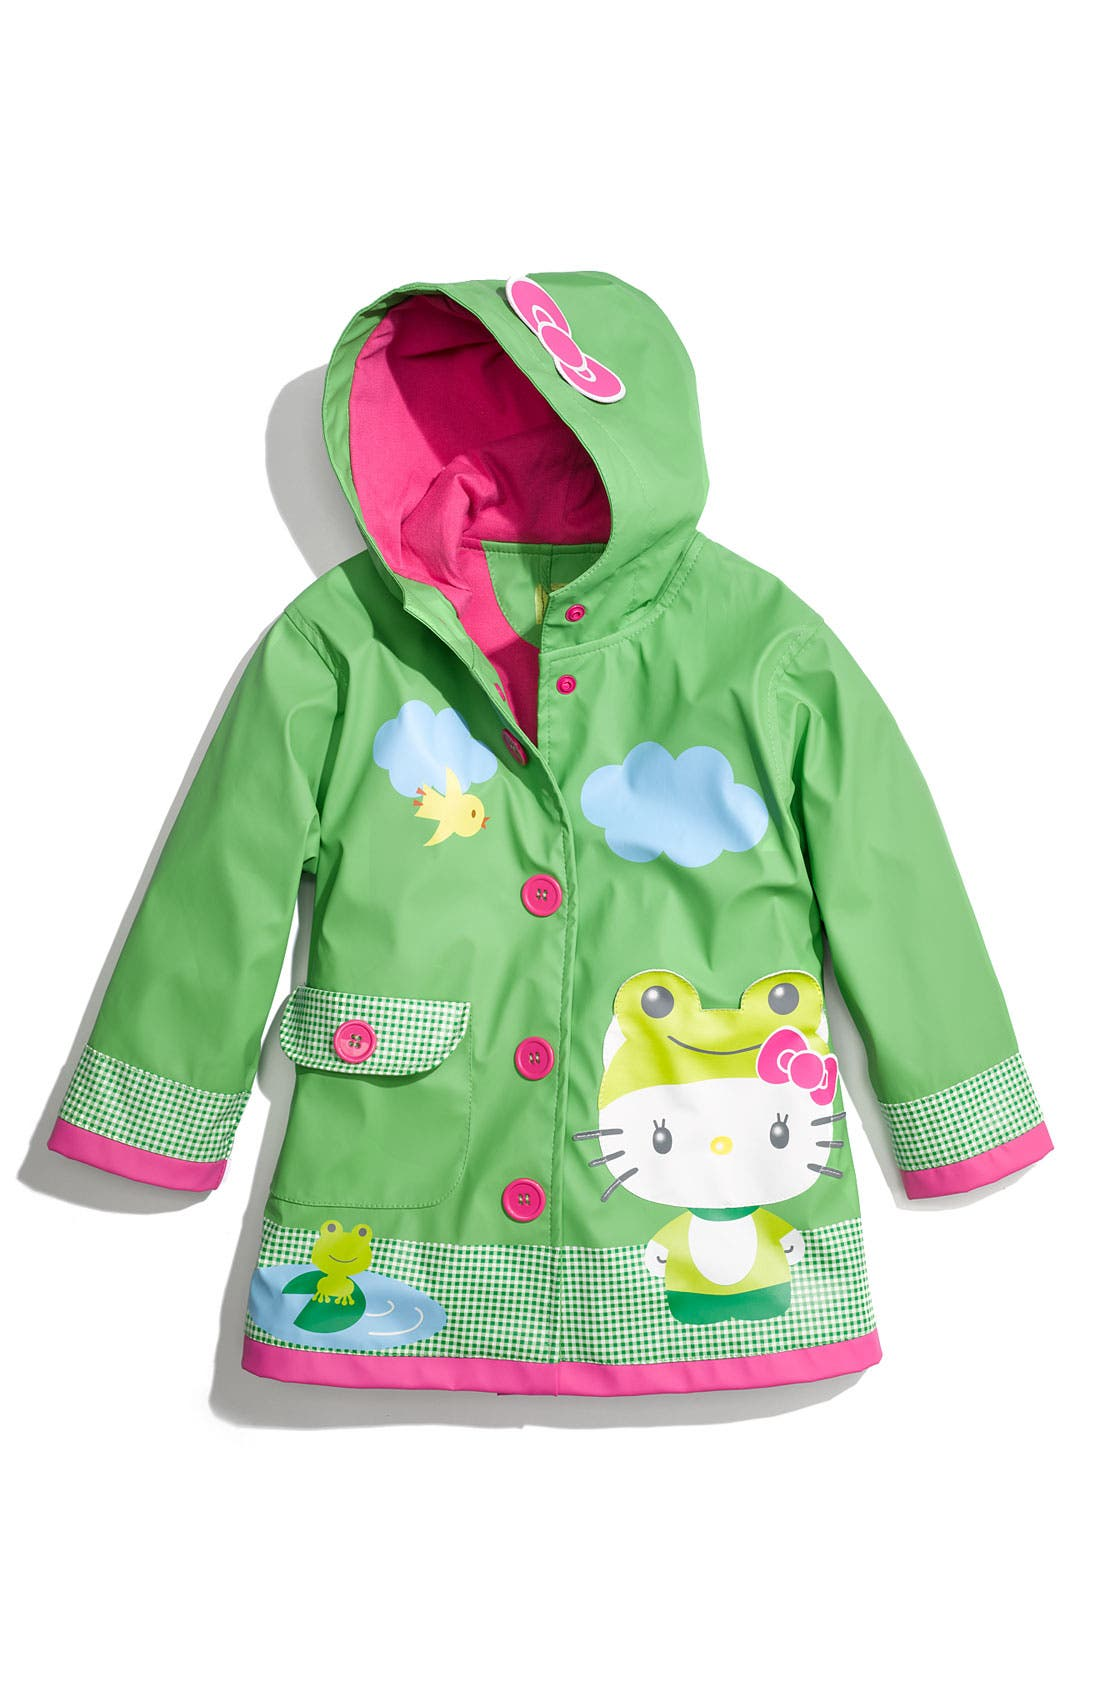 Alternate Image 1 Selected - Western Chief 'Hello Kitty® Froggy' Raincoat (Toddler Girls & Little Girls)